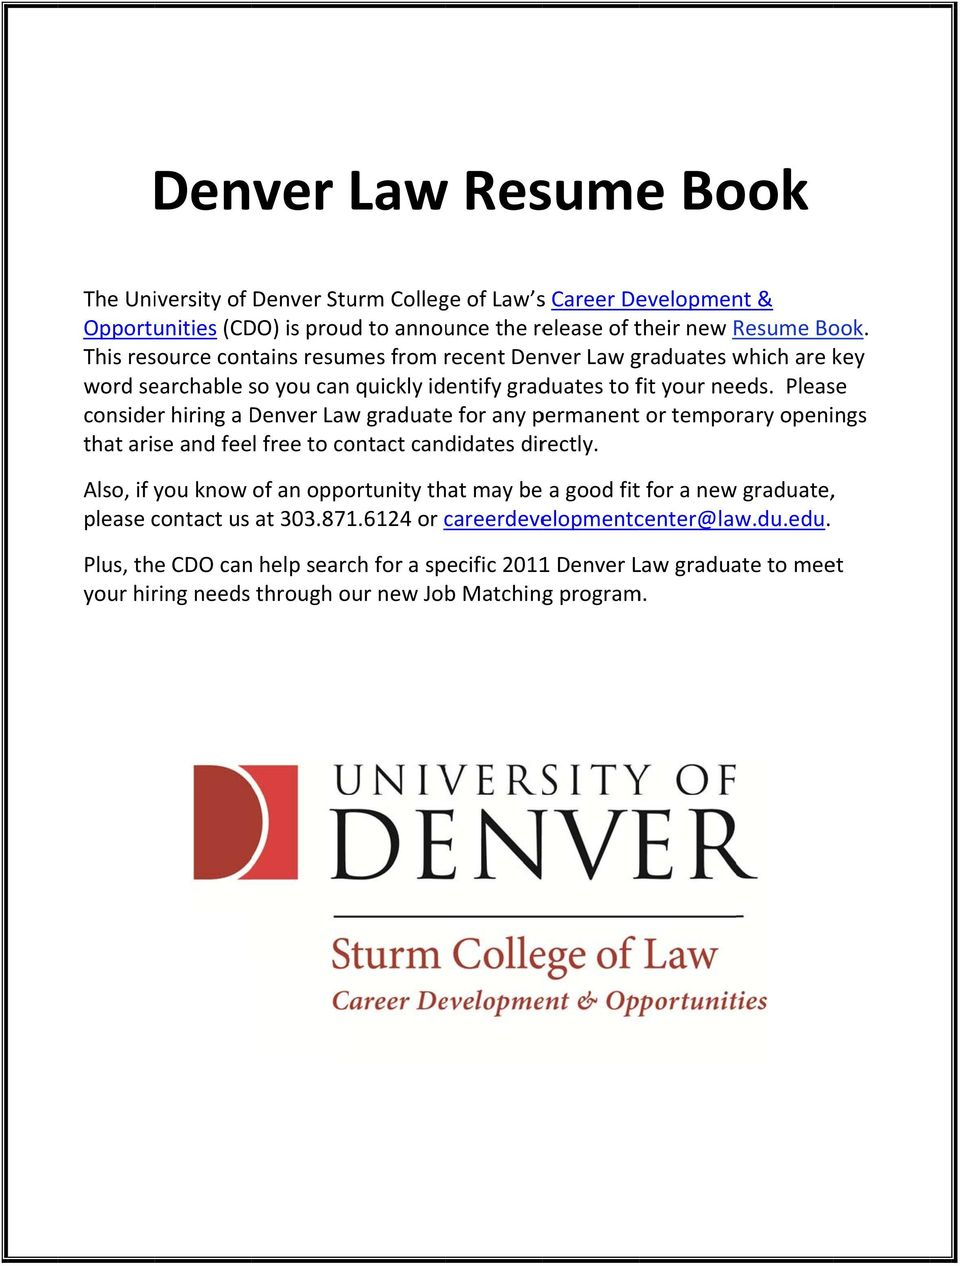 Please consider hiring a Denver Law graduate for any permanentt or temporary openings that arise and feel free to contact candidates directly.